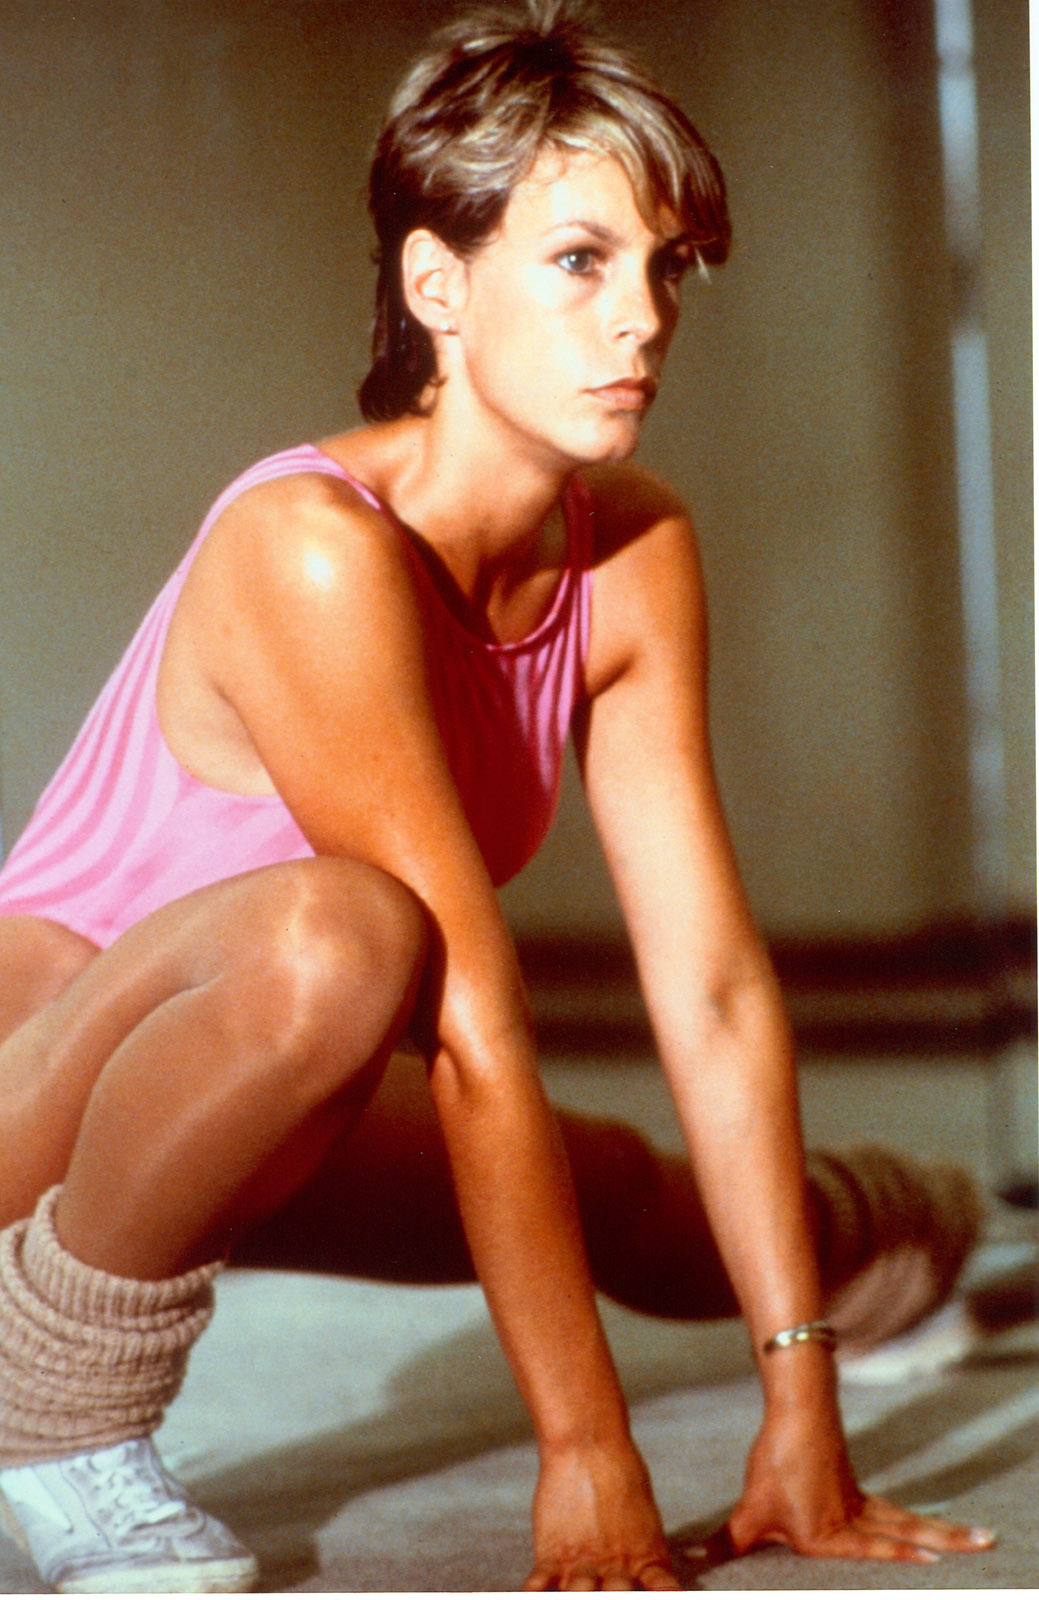 Jamie Lee Curtis in fitness outfit | 80s - aerobics ...